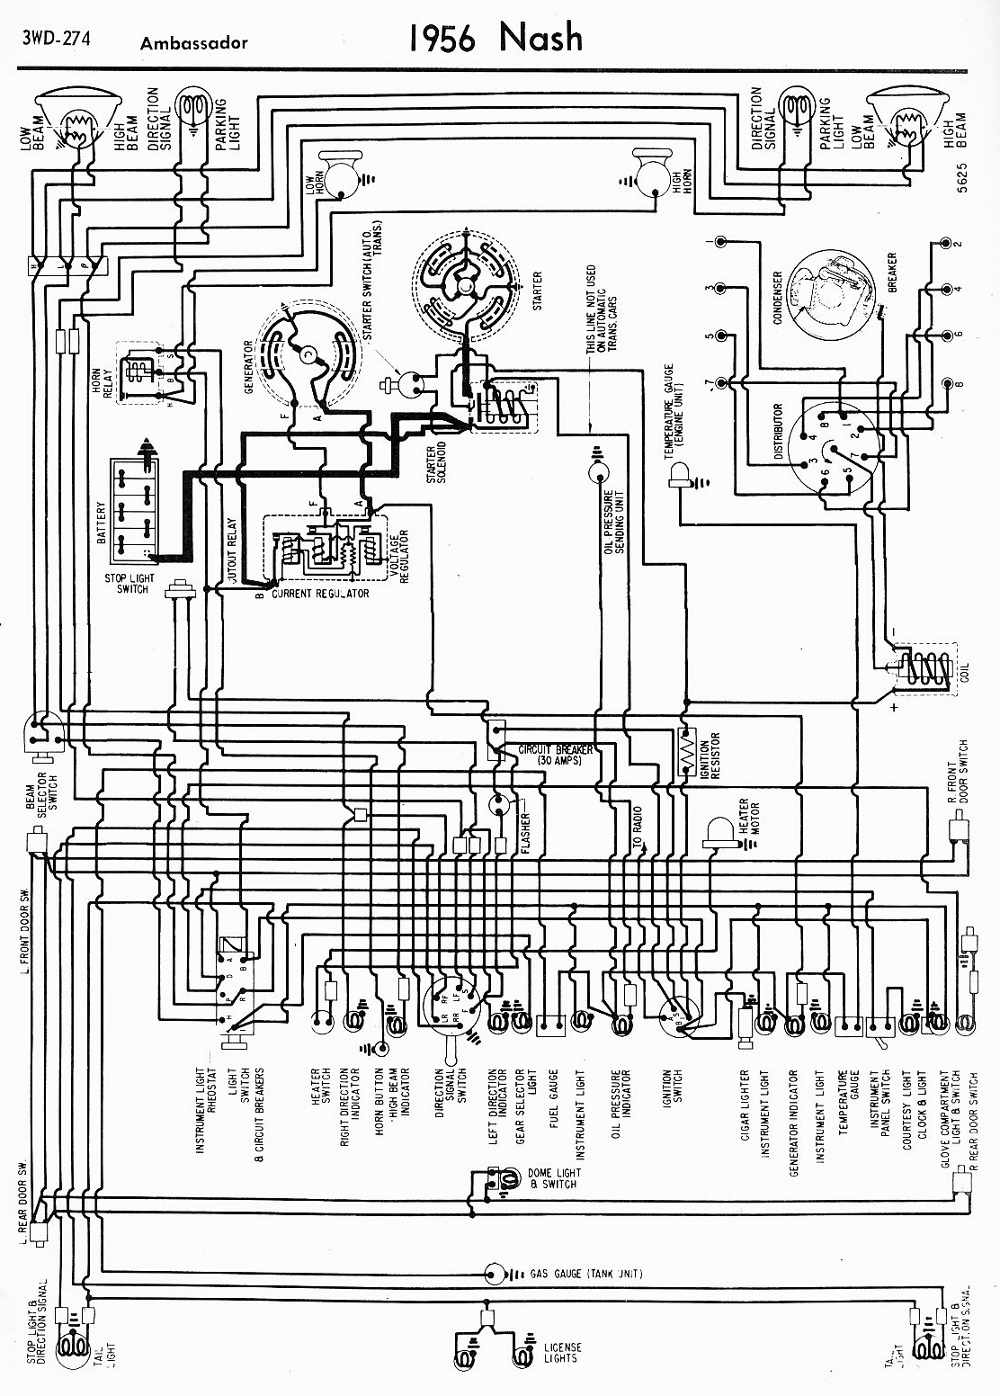 Wiring Diagram Of Nash Ambassador on 1956 oldsmobile wiring diagram